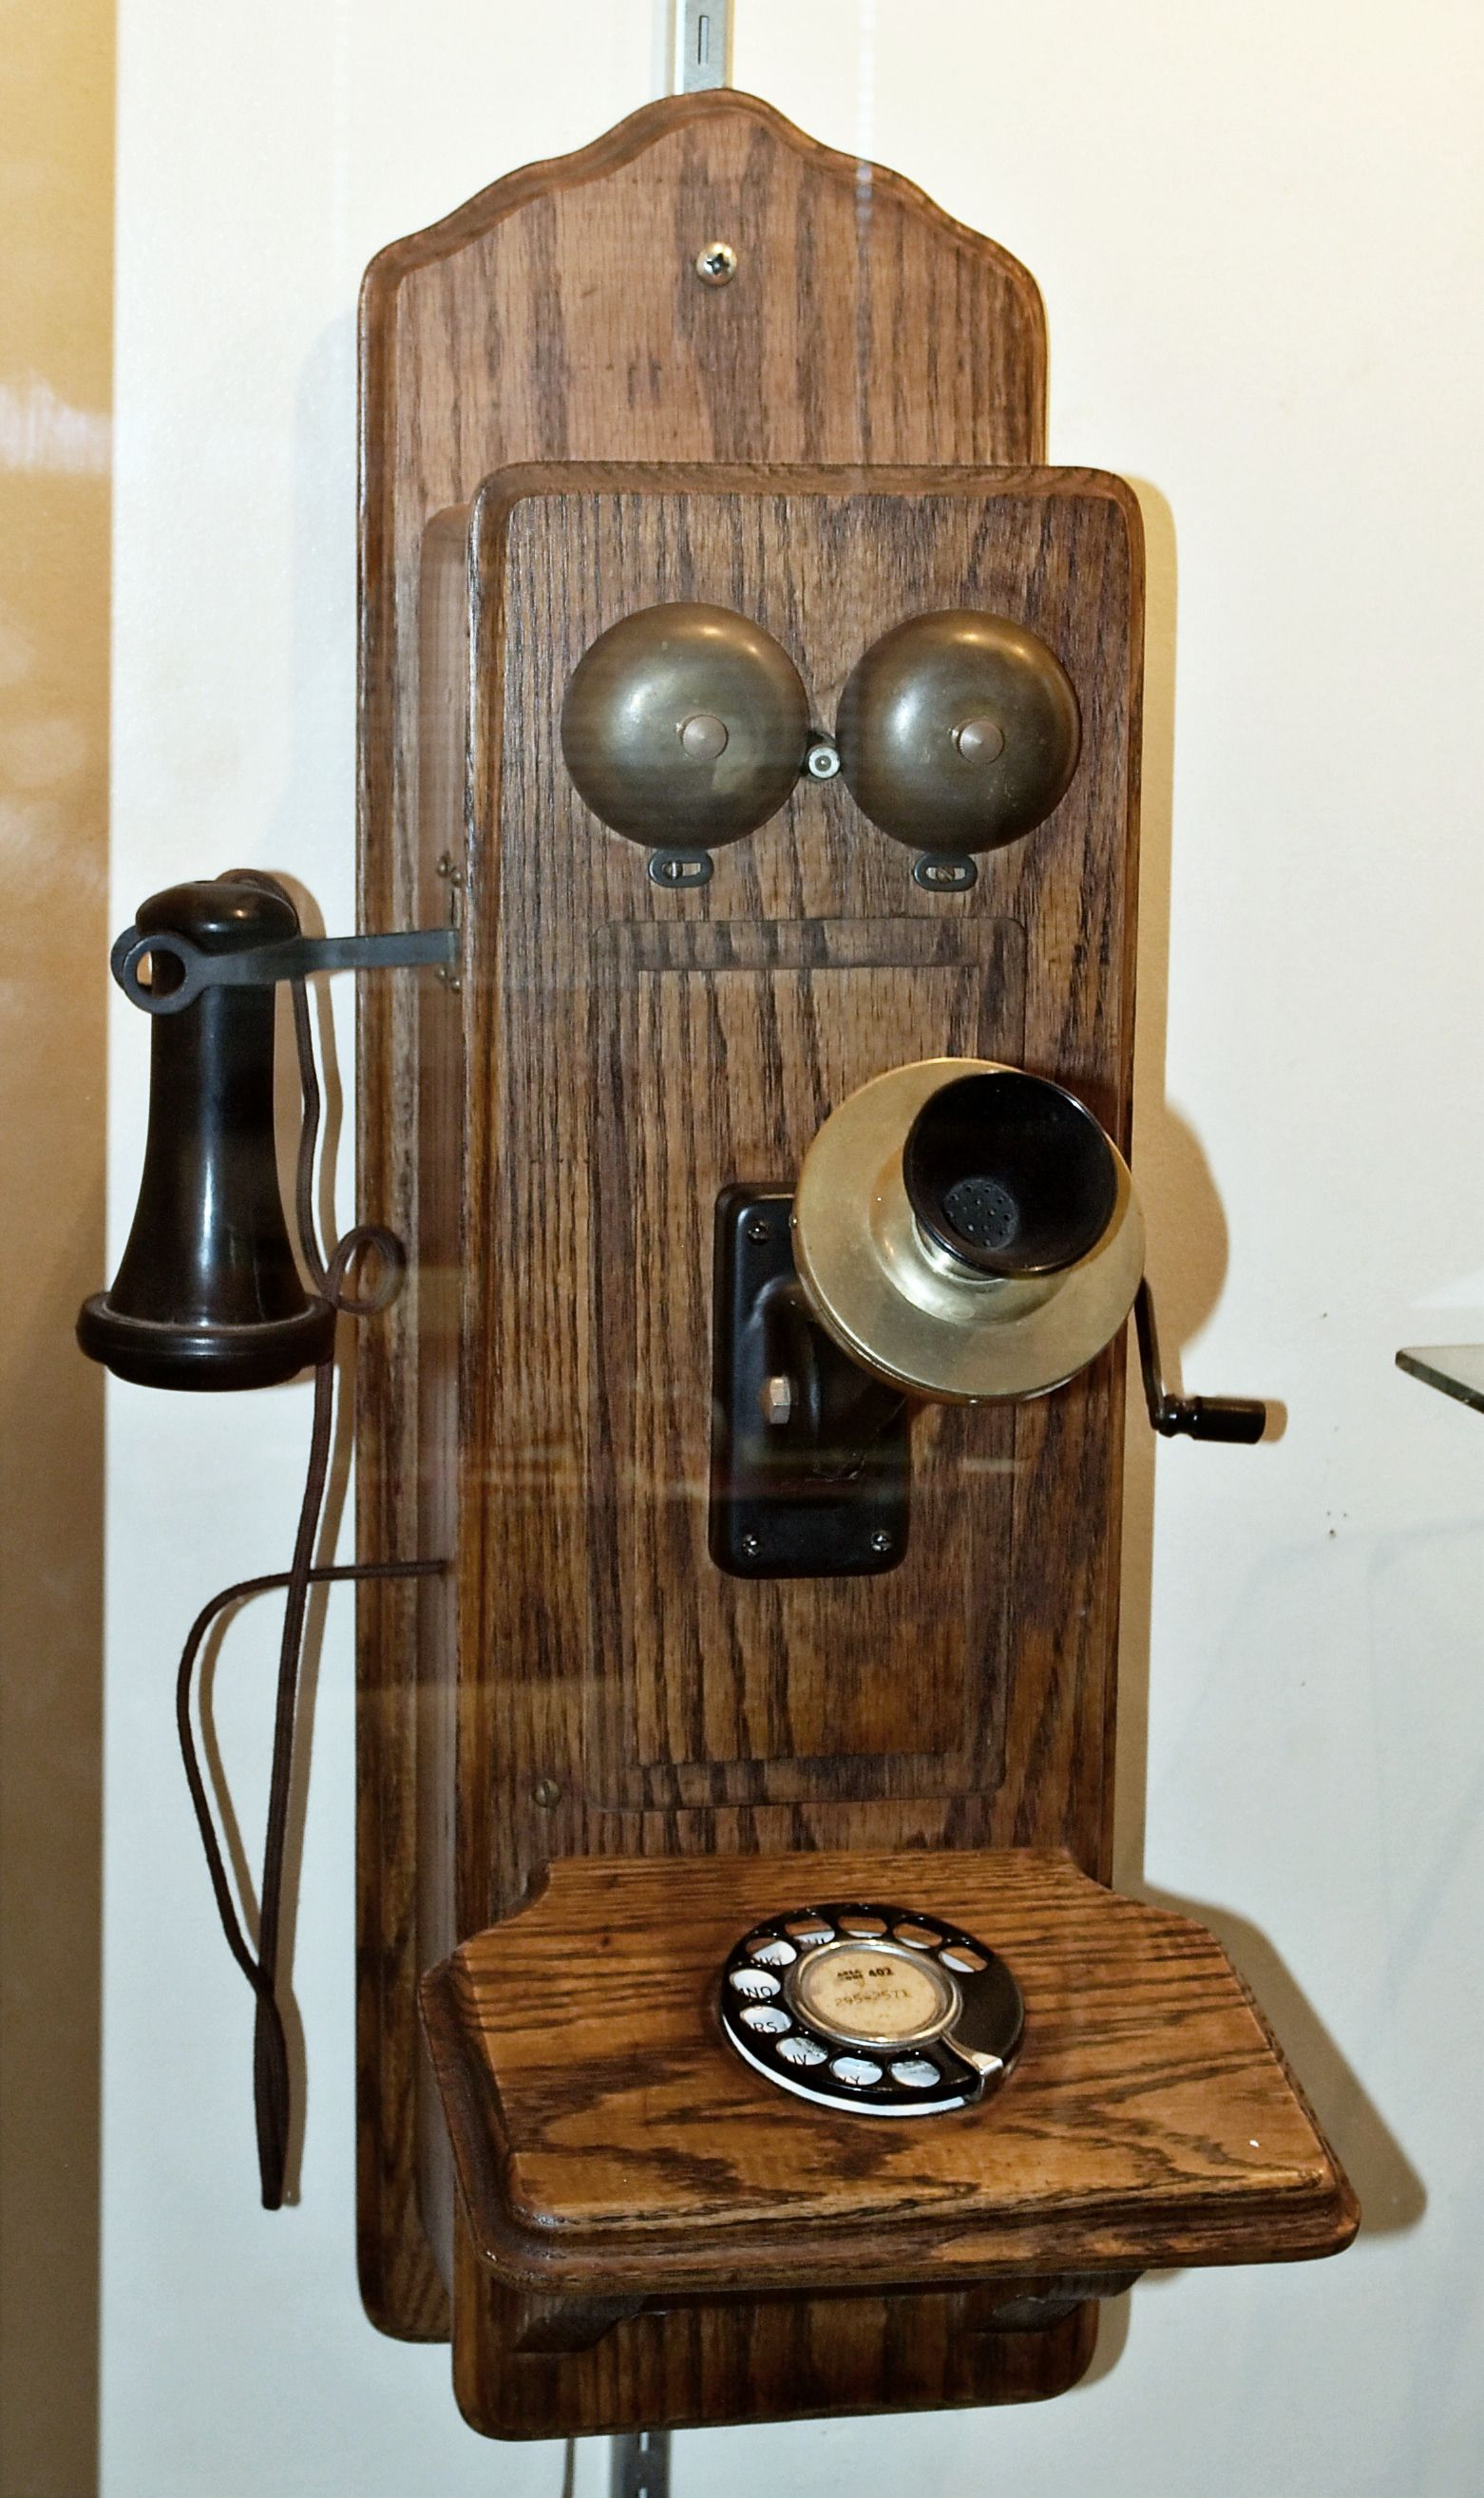 The Telephone Was Invented By Alexander Graham Bell In 1876 First Words Ever Spoken Over Were Come Here Watson I Need You